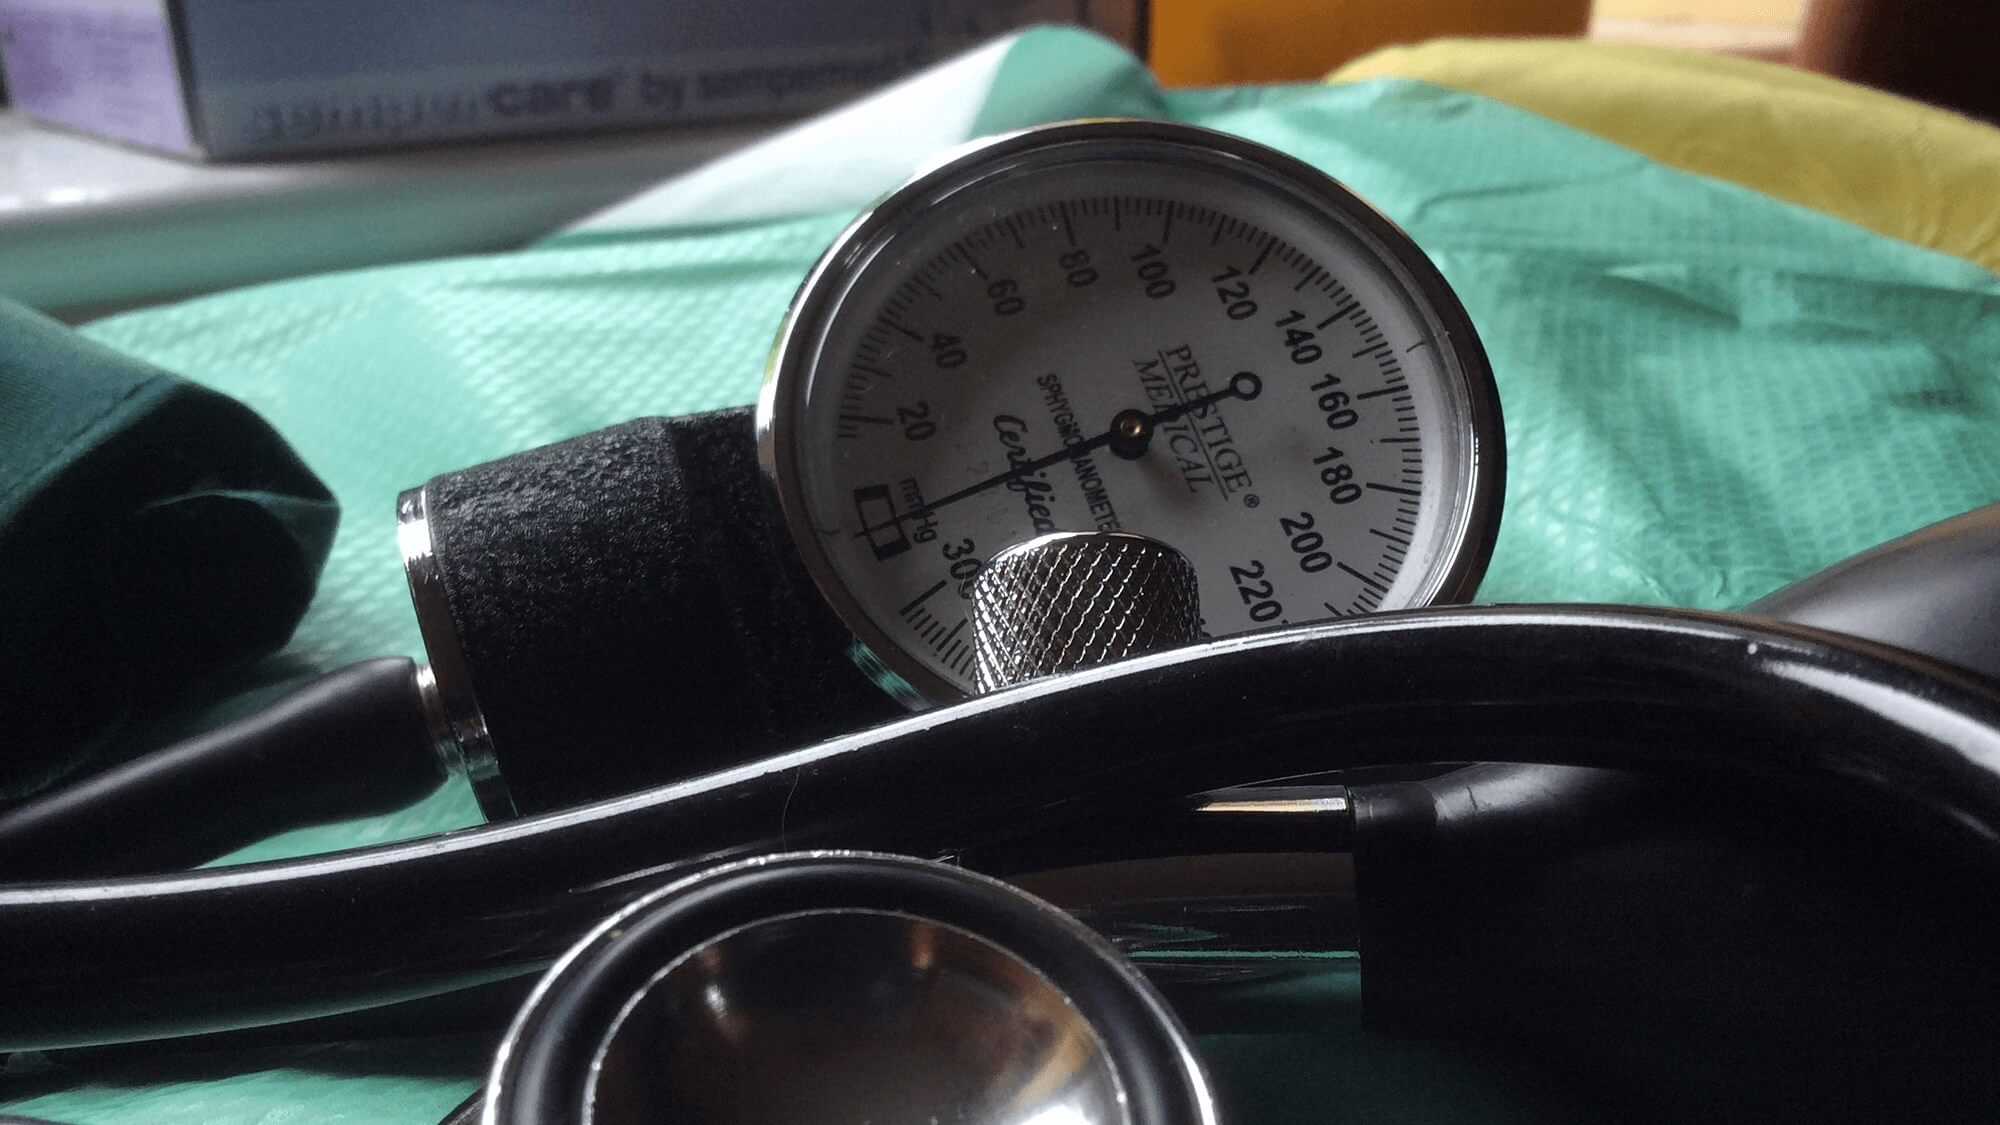 a gauge on a blood pressure cuff